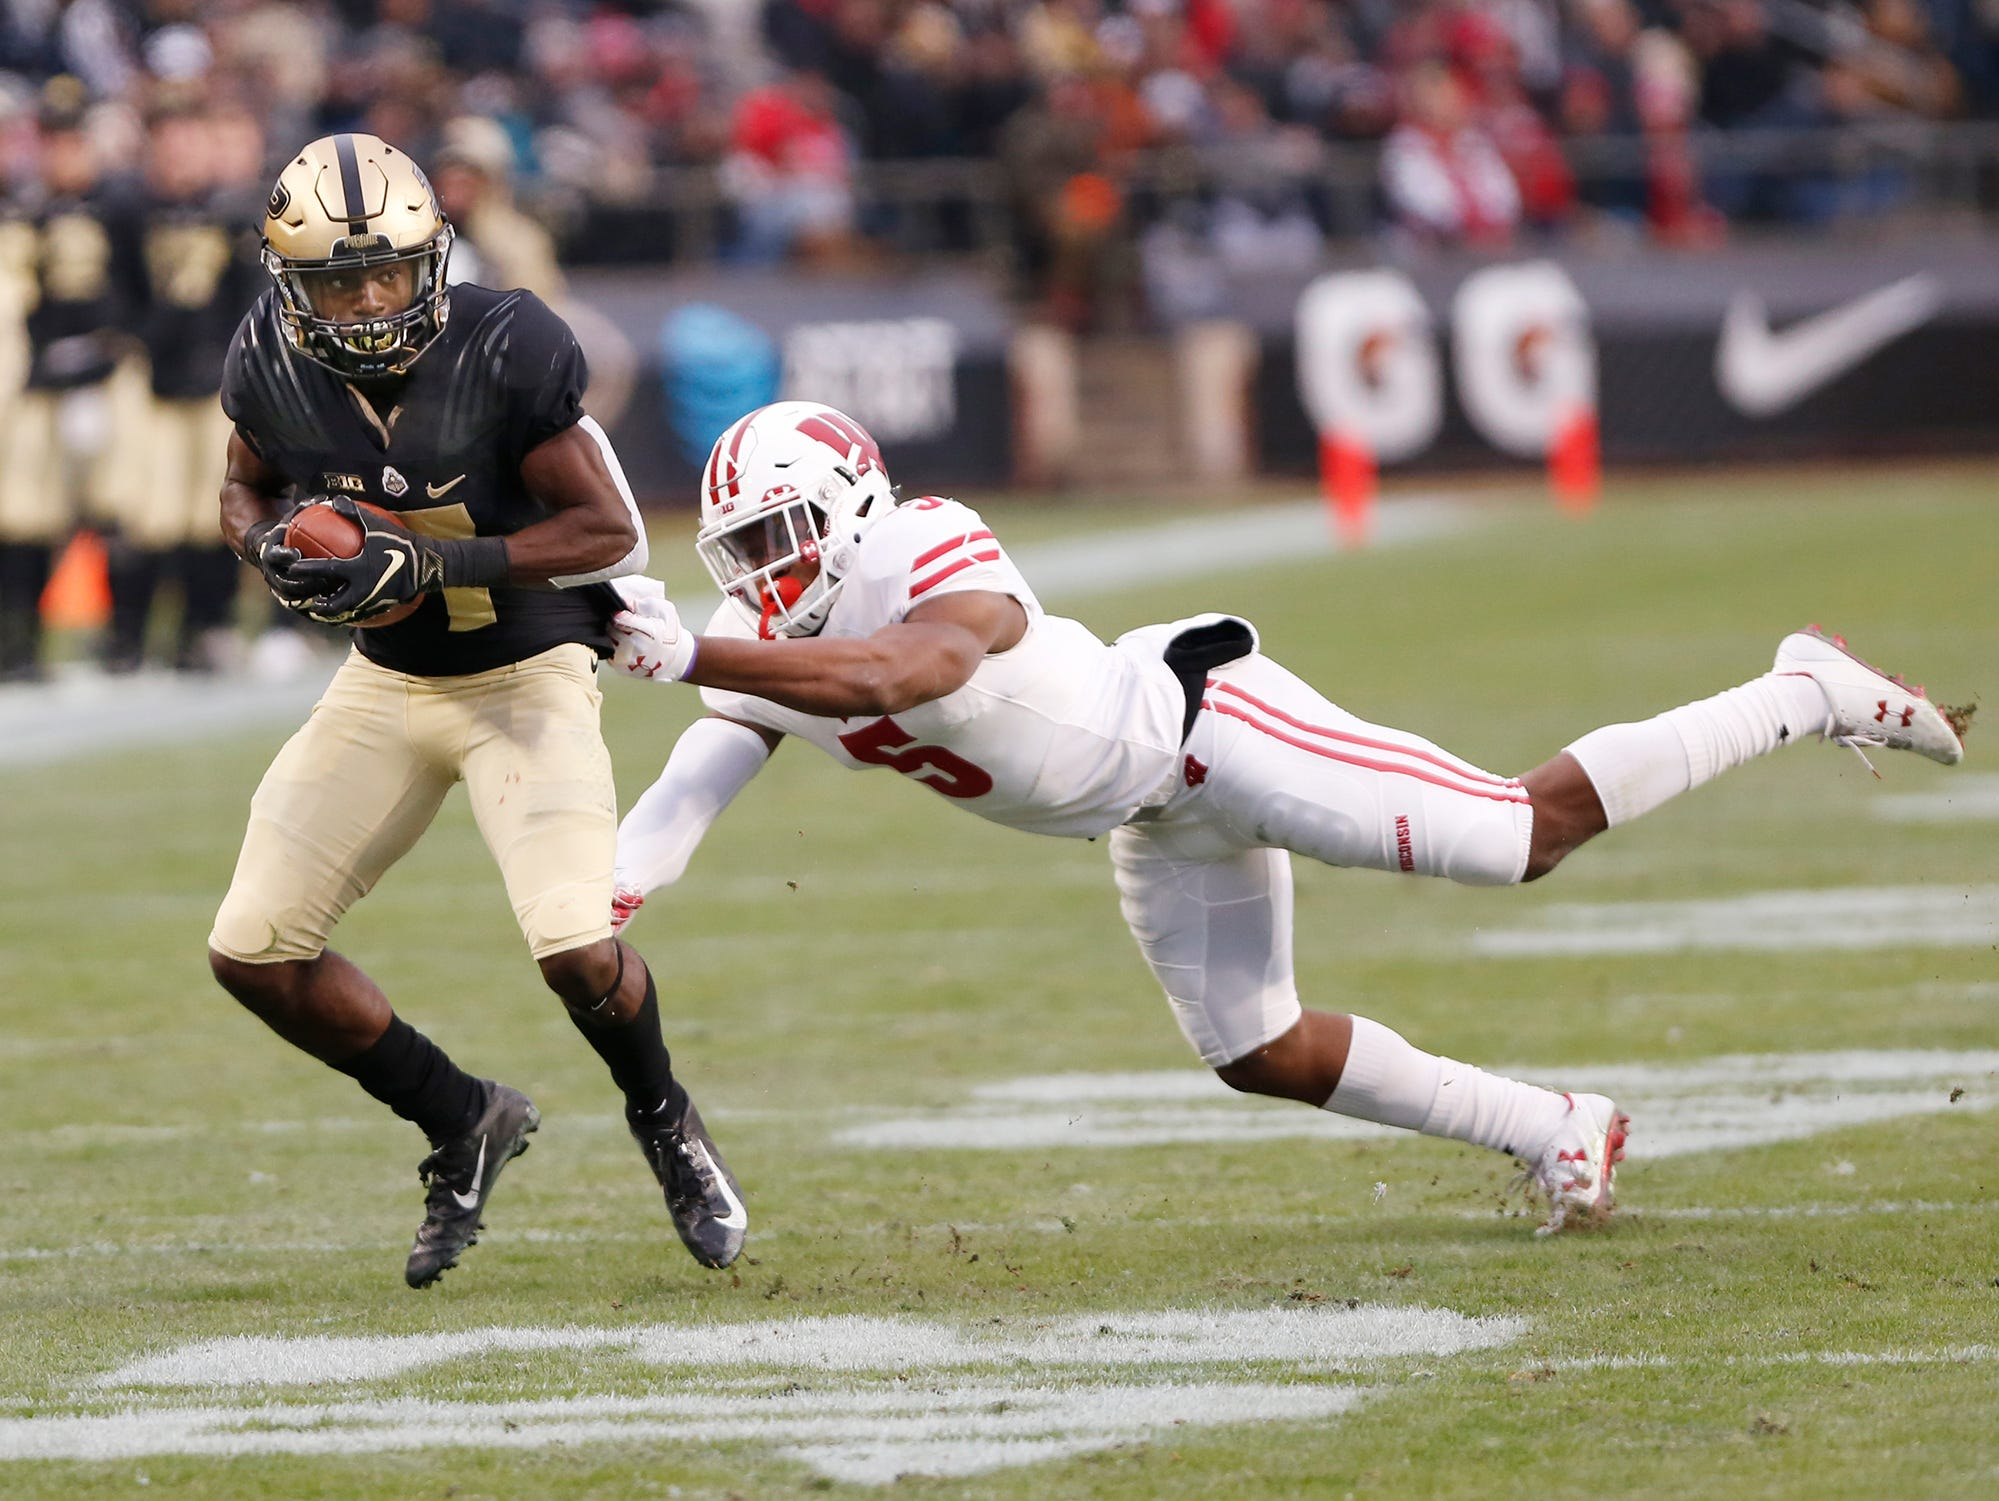 Isaac Zico of Purdue shakes free of Rachad Wildgoose of Wisconsin after a first half pass reception Saturday, November 17, 2018, at Ross-Ade Stadium.